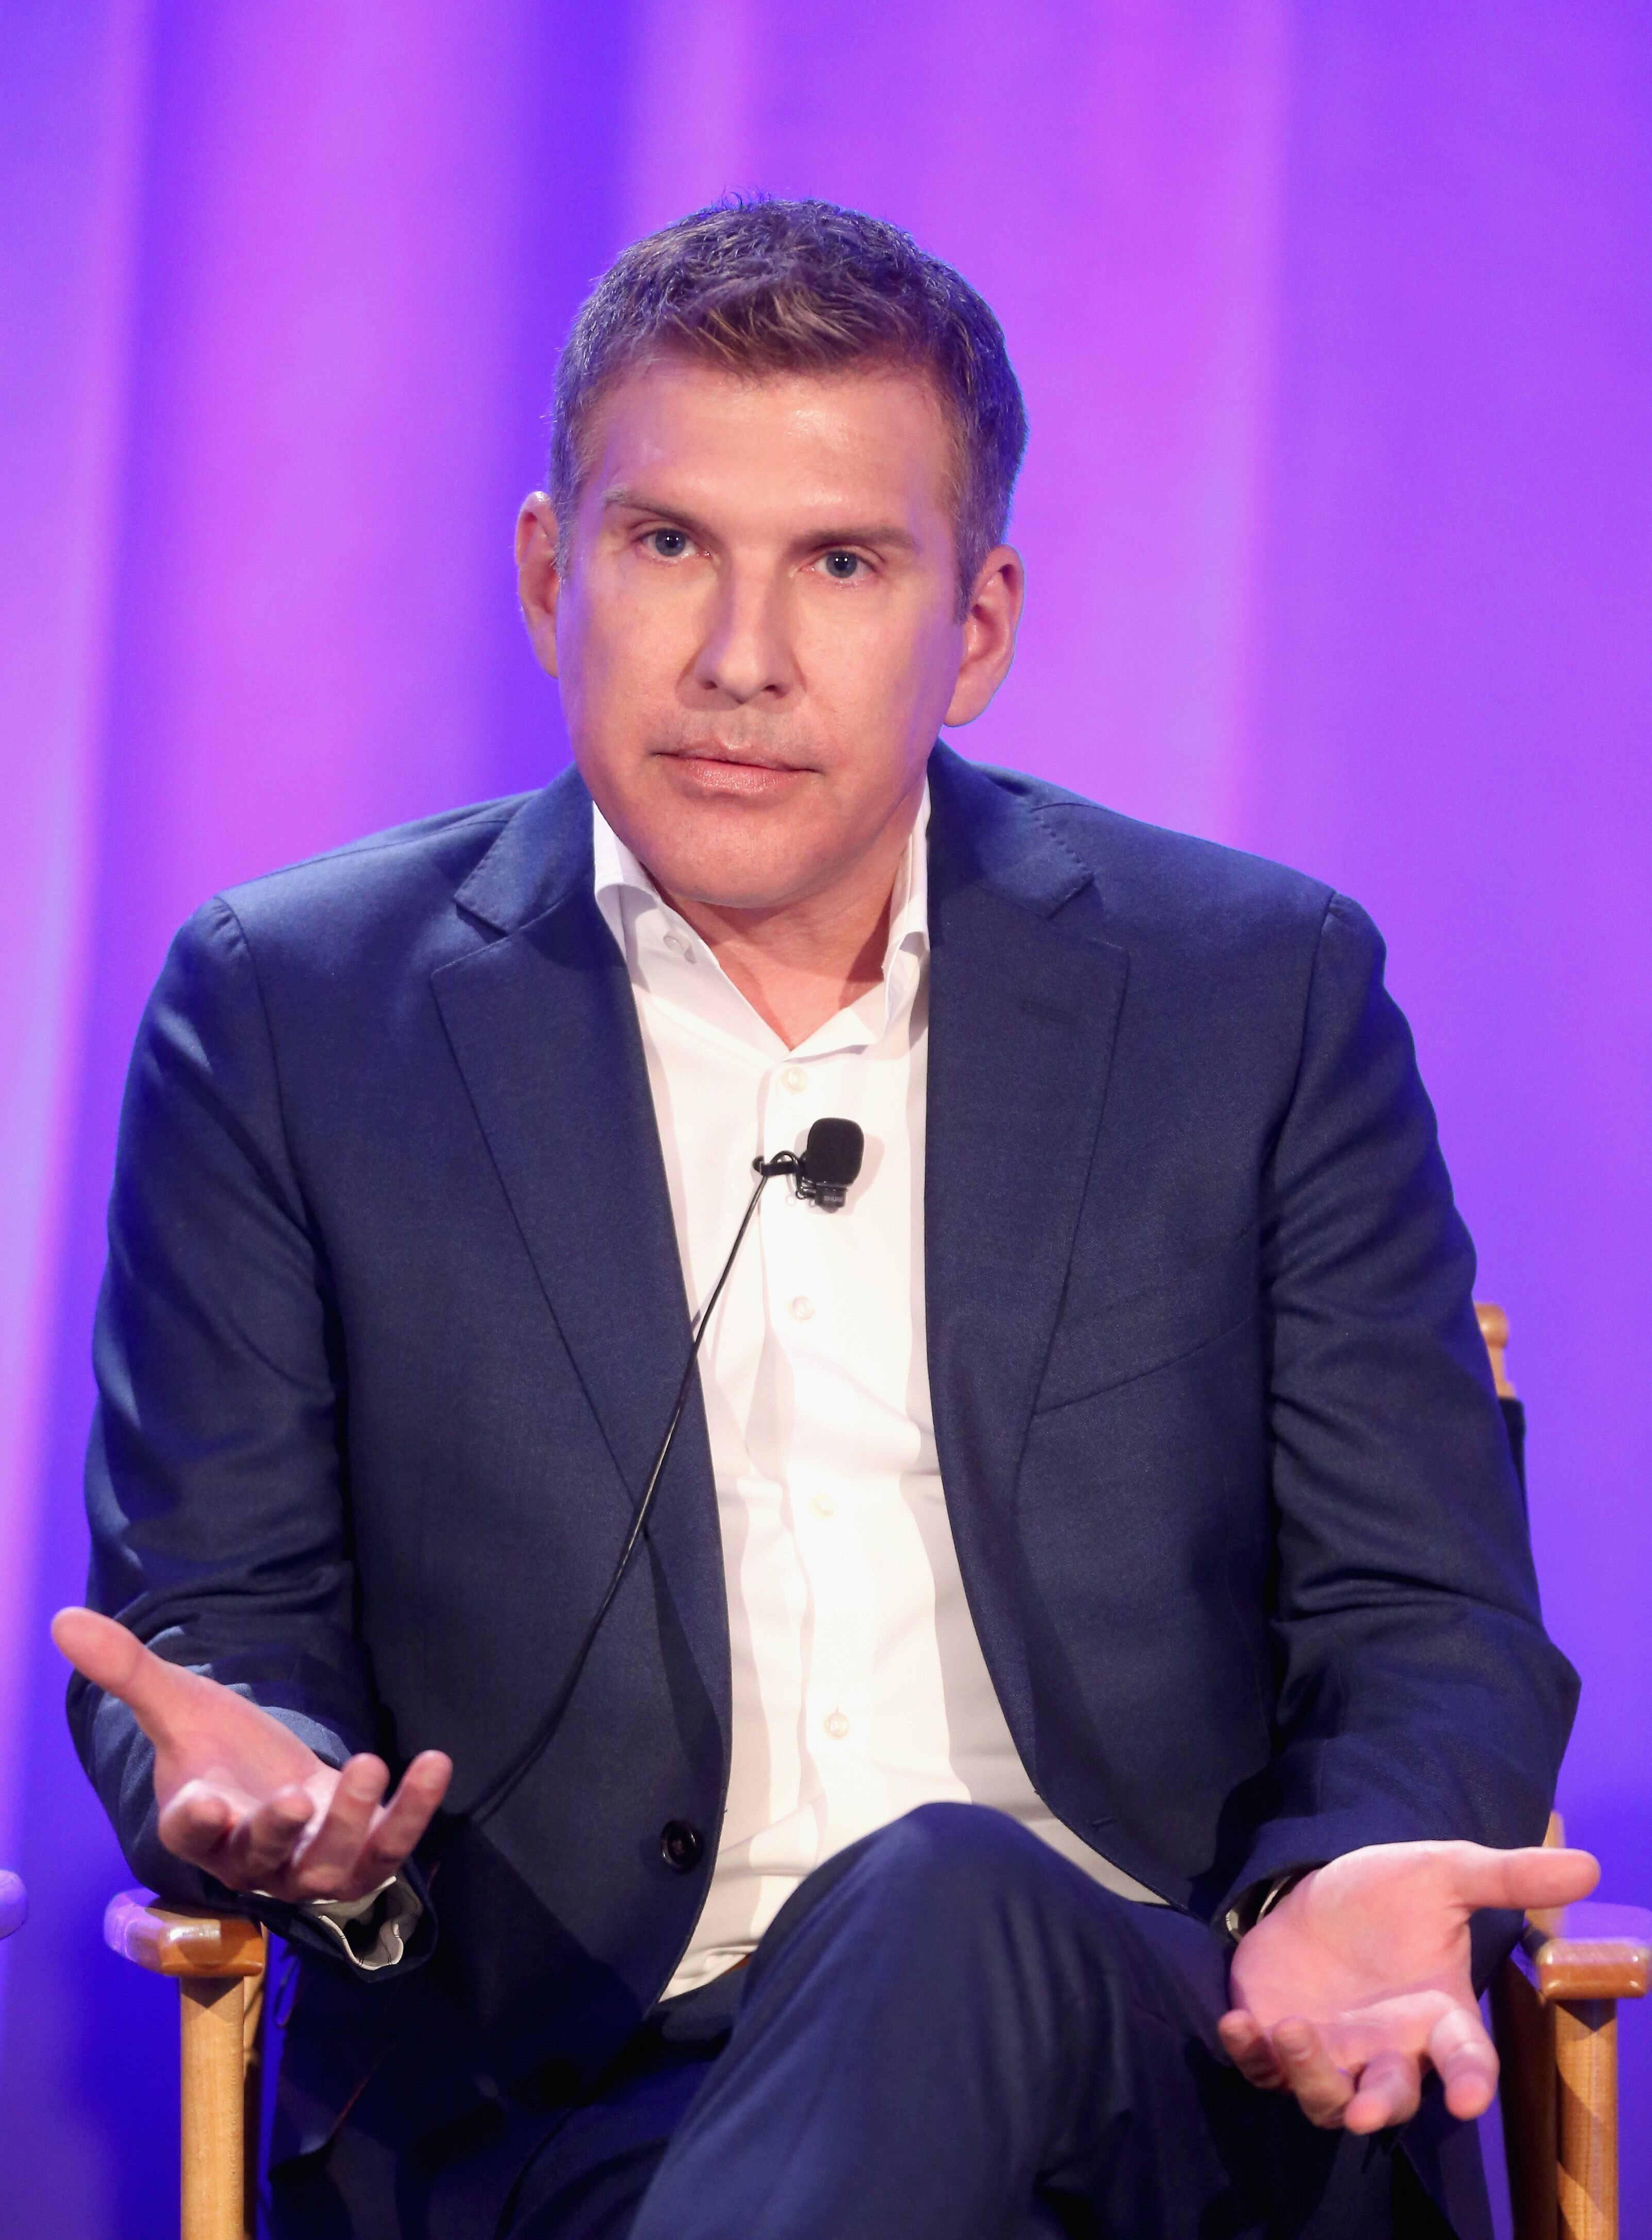 Todd Chrisley speaks before an audience. | Source: Getty Images